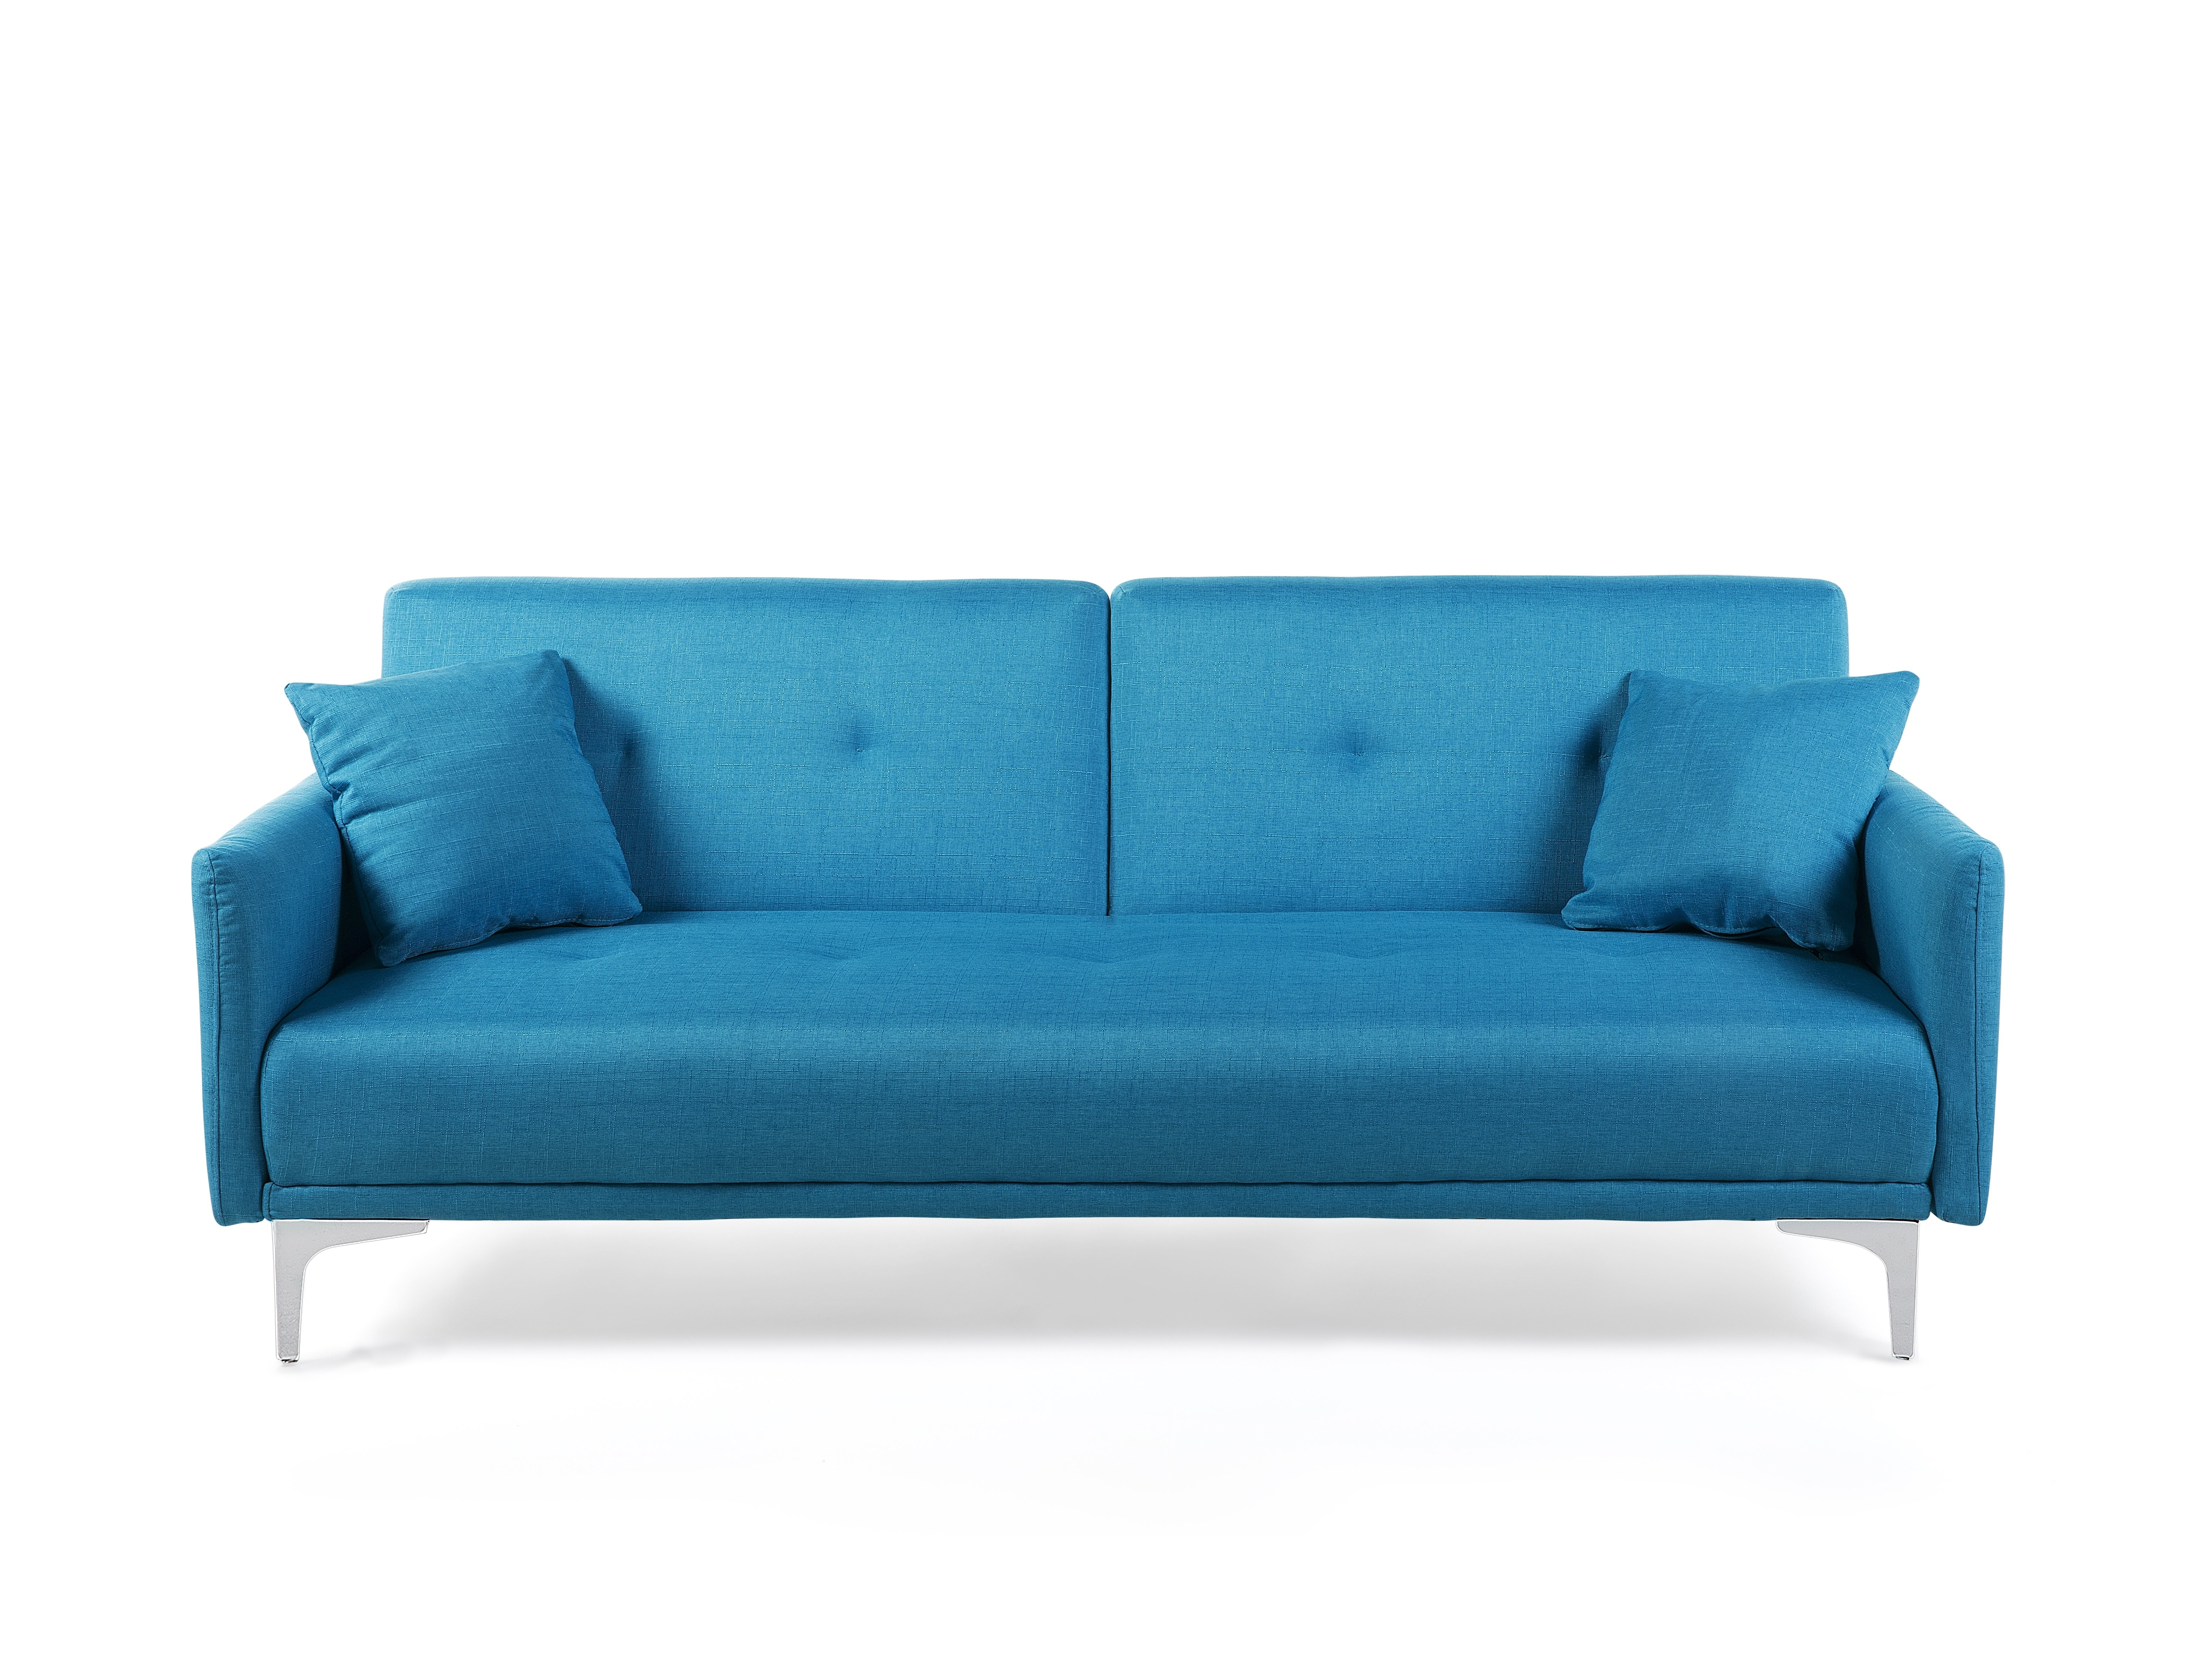 Most Recently Released Turquoise Gem Chandelier Lamps Within Living Room : Turquoise Couch L Couch Teal Couch Vinyl Couch Light (View 9 of 20)